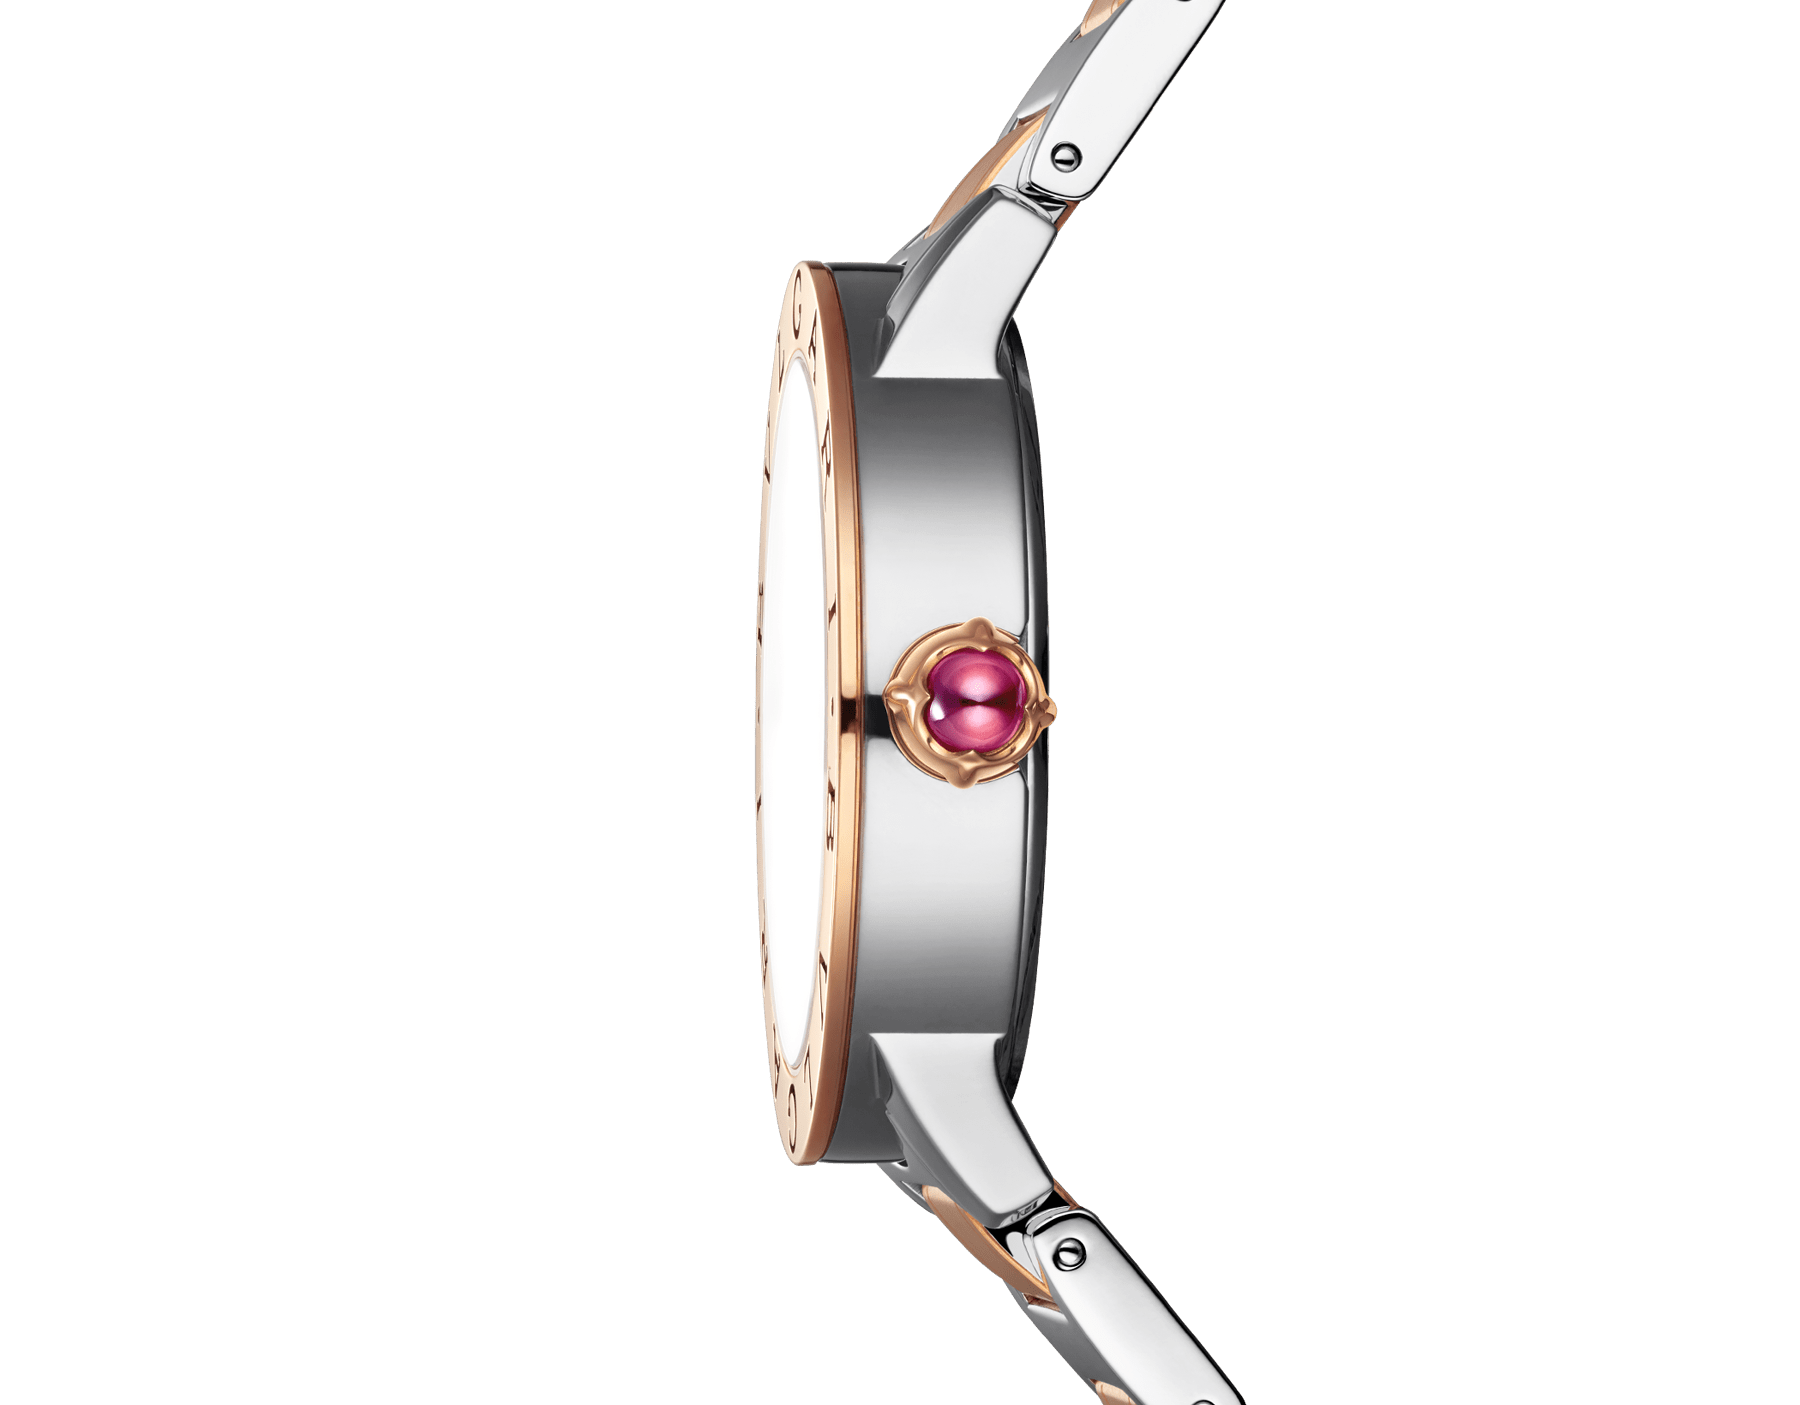 BVLGARI BVLGARI LADY watch in stainless steel and 18 kt rose gold case and bracelet, with purple satiné soleil lacquered dial and diamond indexes 102622 image 3